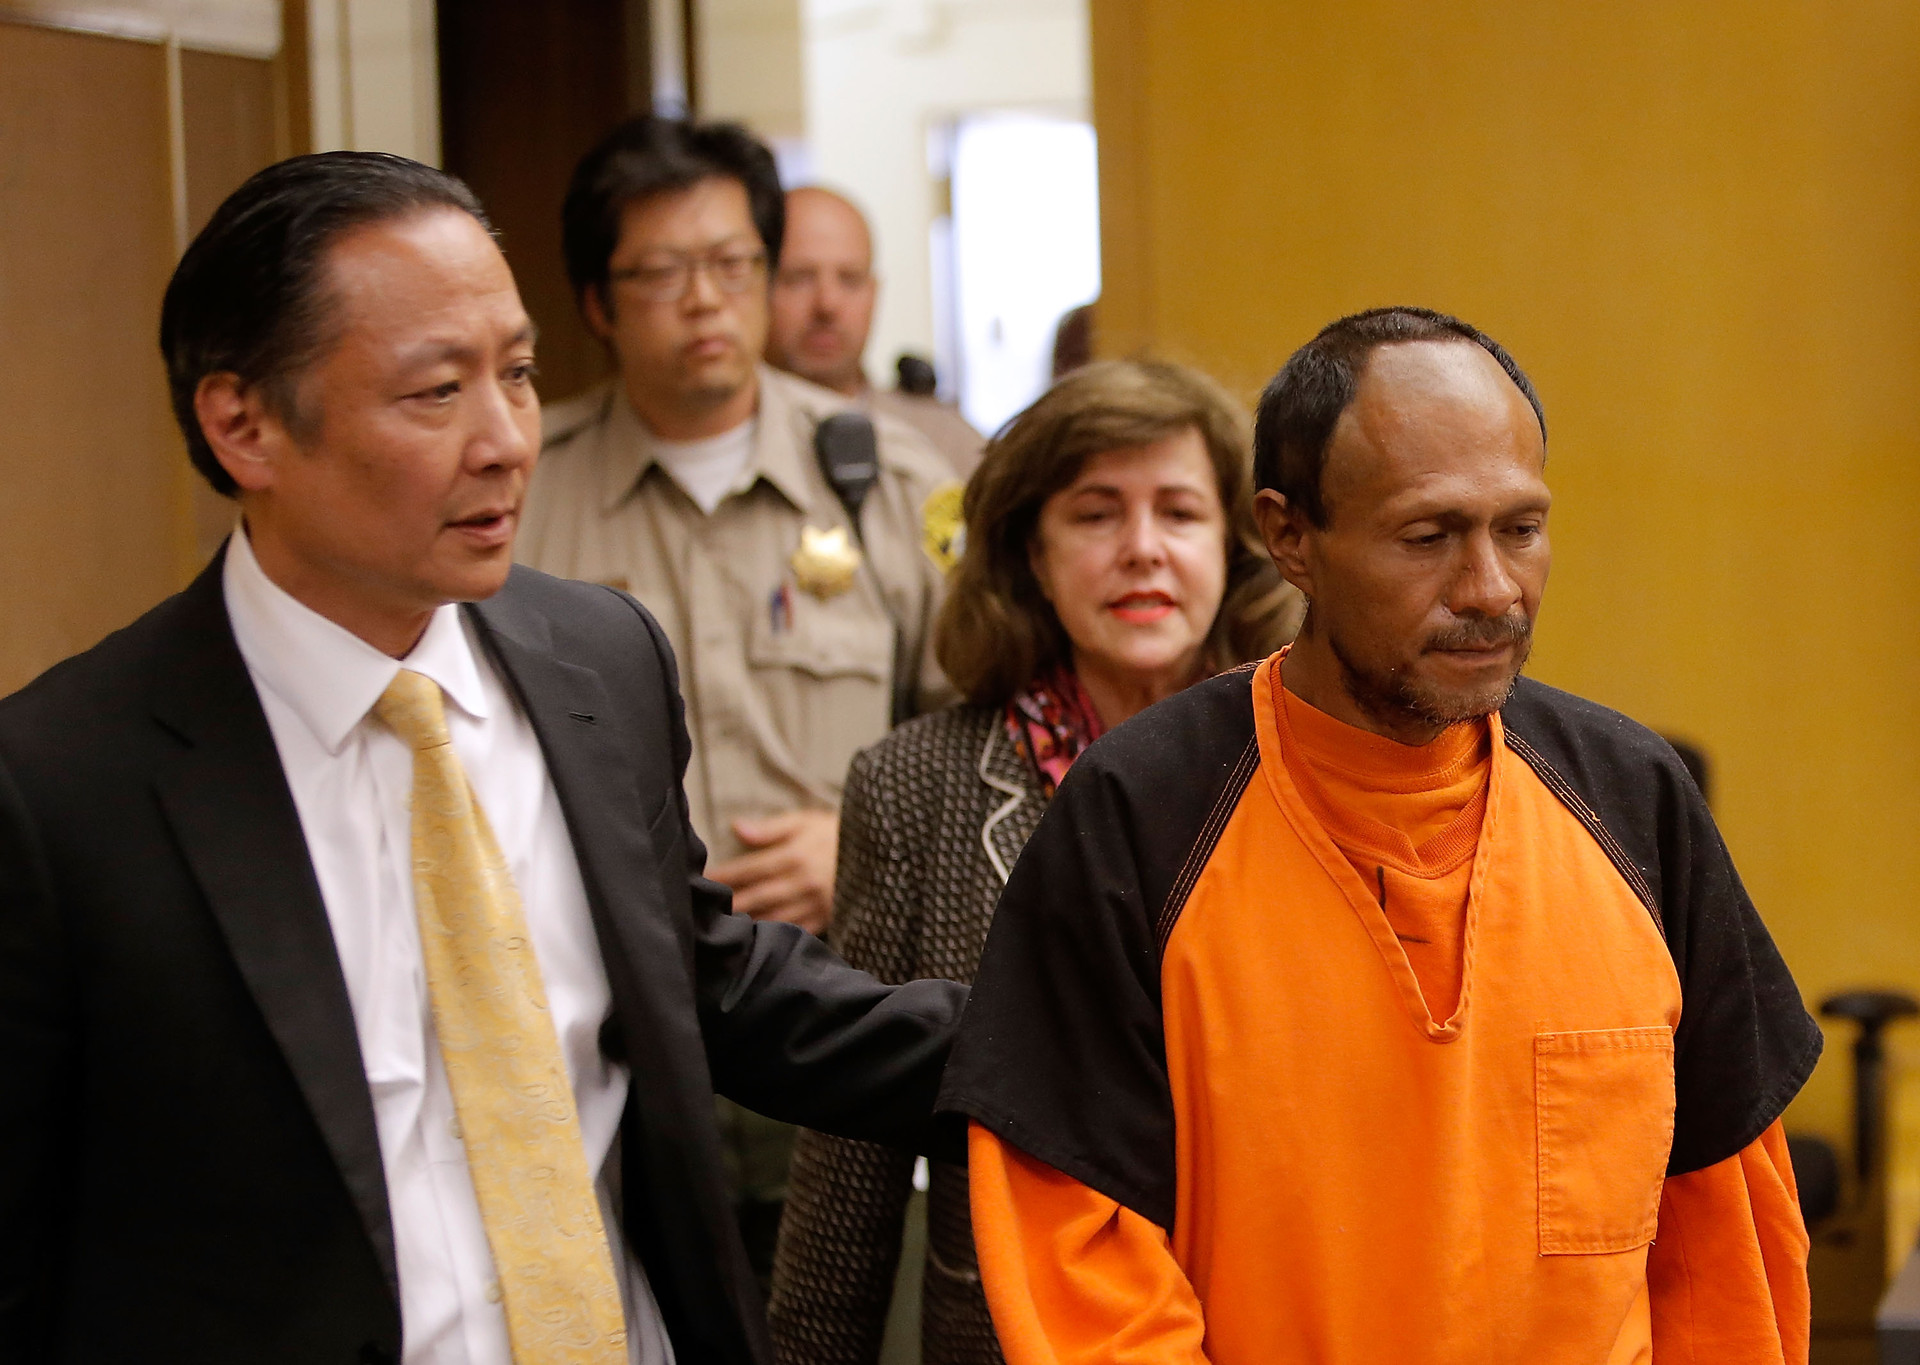 Francisco Sanchez, right, enters court for an arraignment with San Francisco Public Defender Jeff Adachi on July 7 in San Francisco.